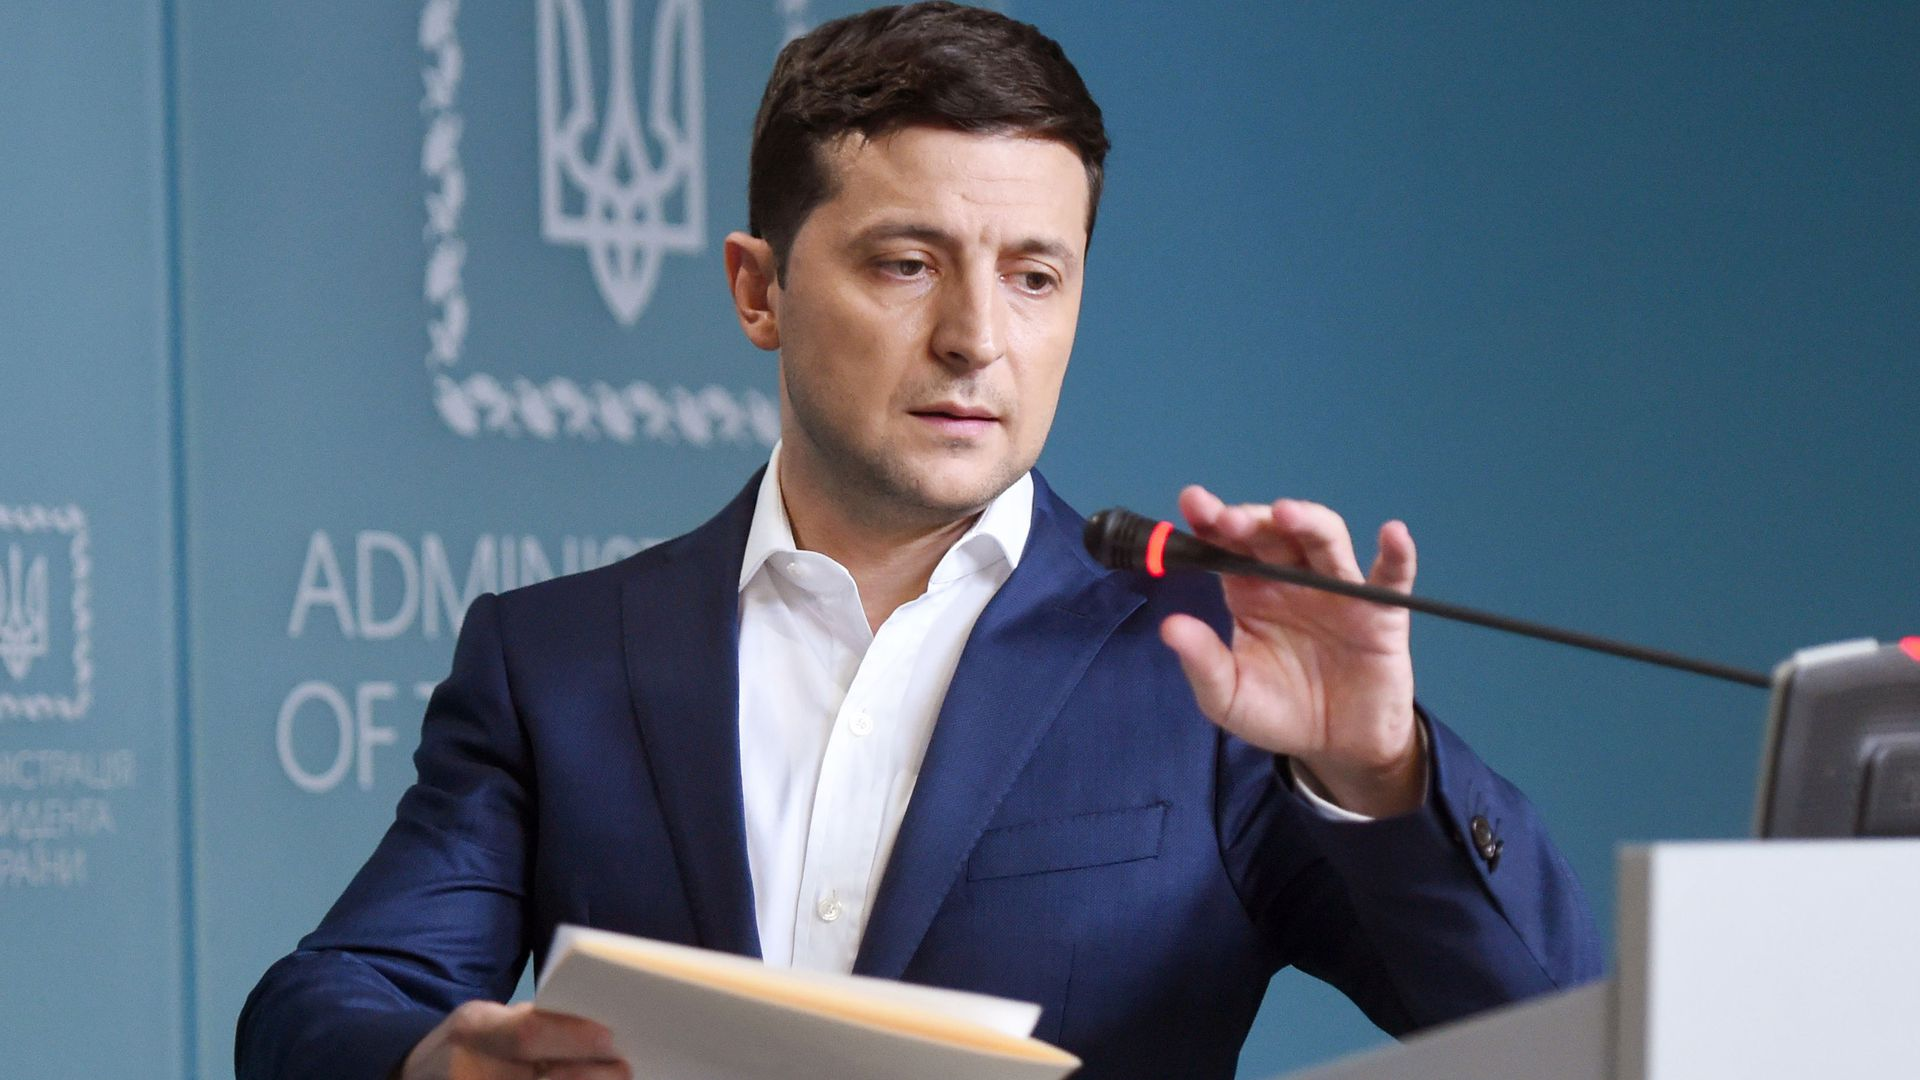 Checking in on Ukraine's TV star turned president